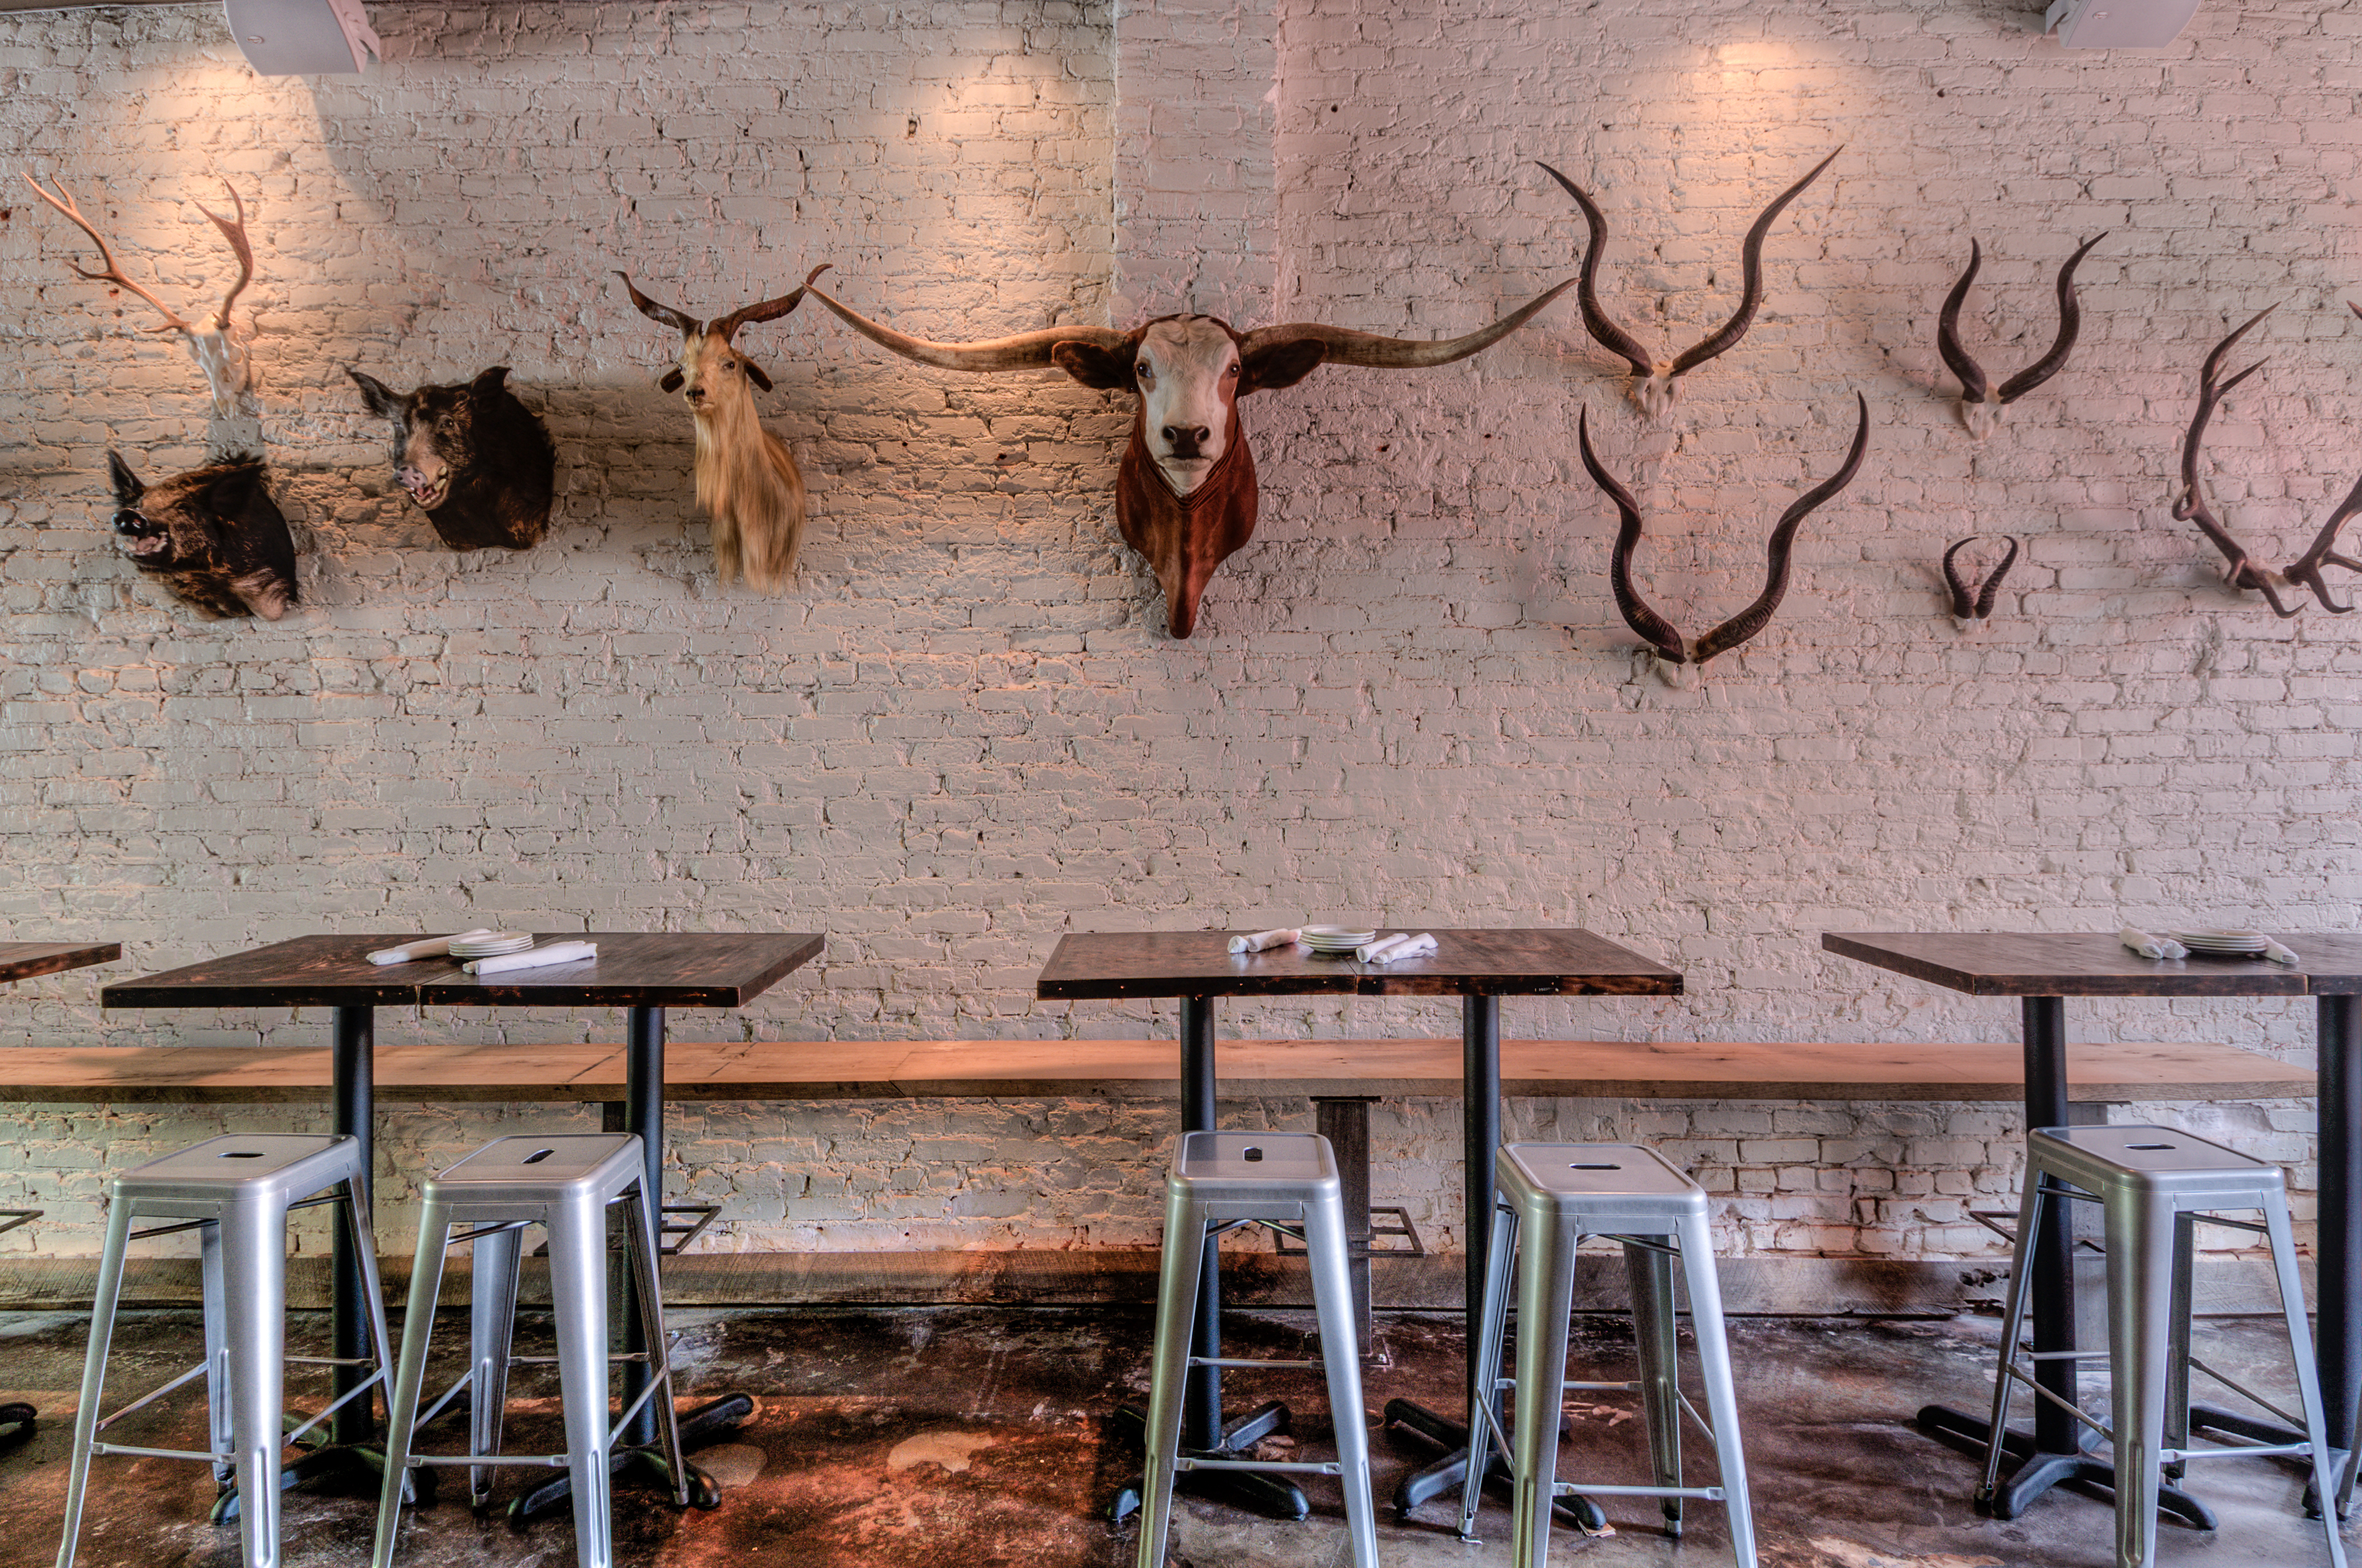 Inside the dining room at One Eared Stag.